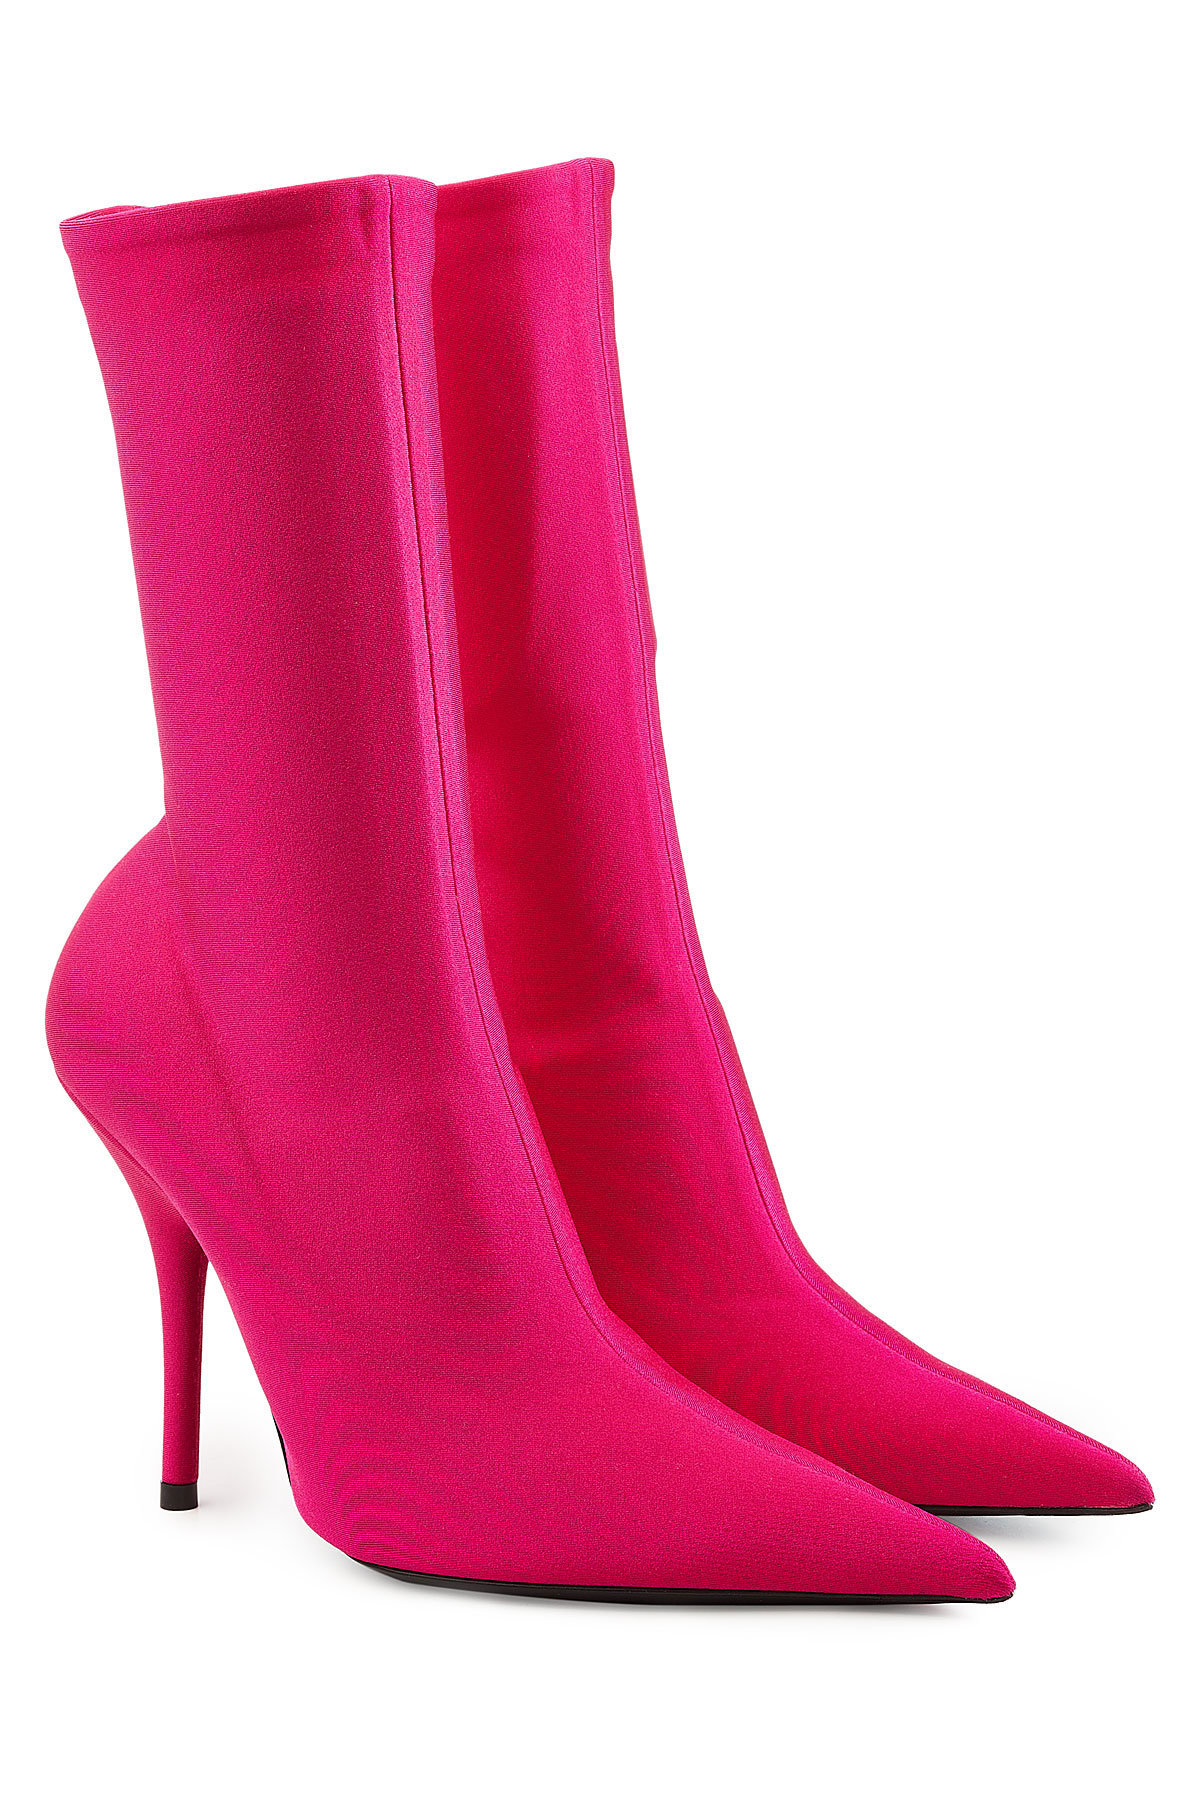 Balenciaga - Knife Stiletto Boots, $1,190